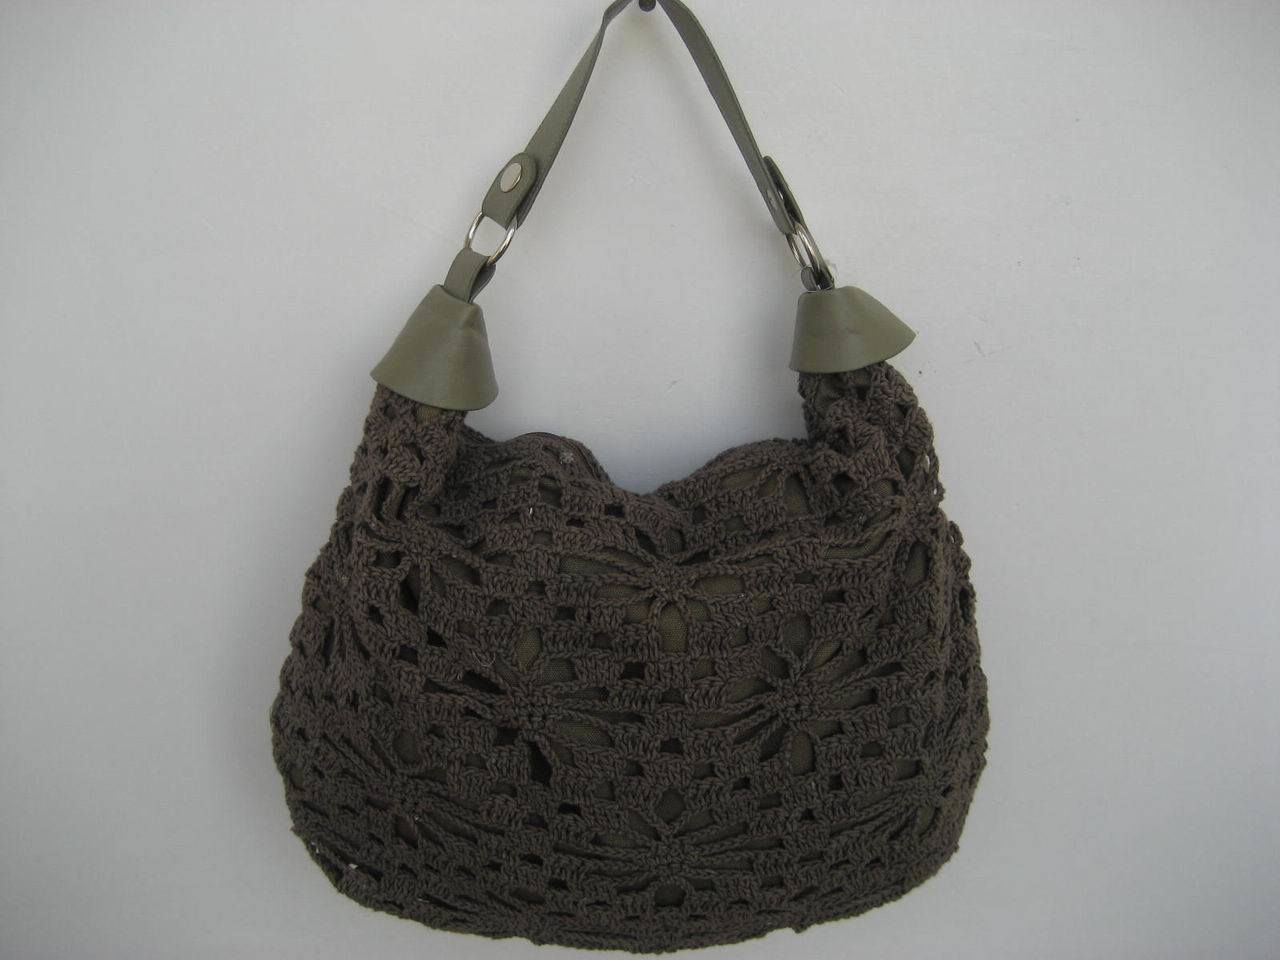 China Cotton Crochet Bag - China Woven Tote Bag, Fashionable Handbag